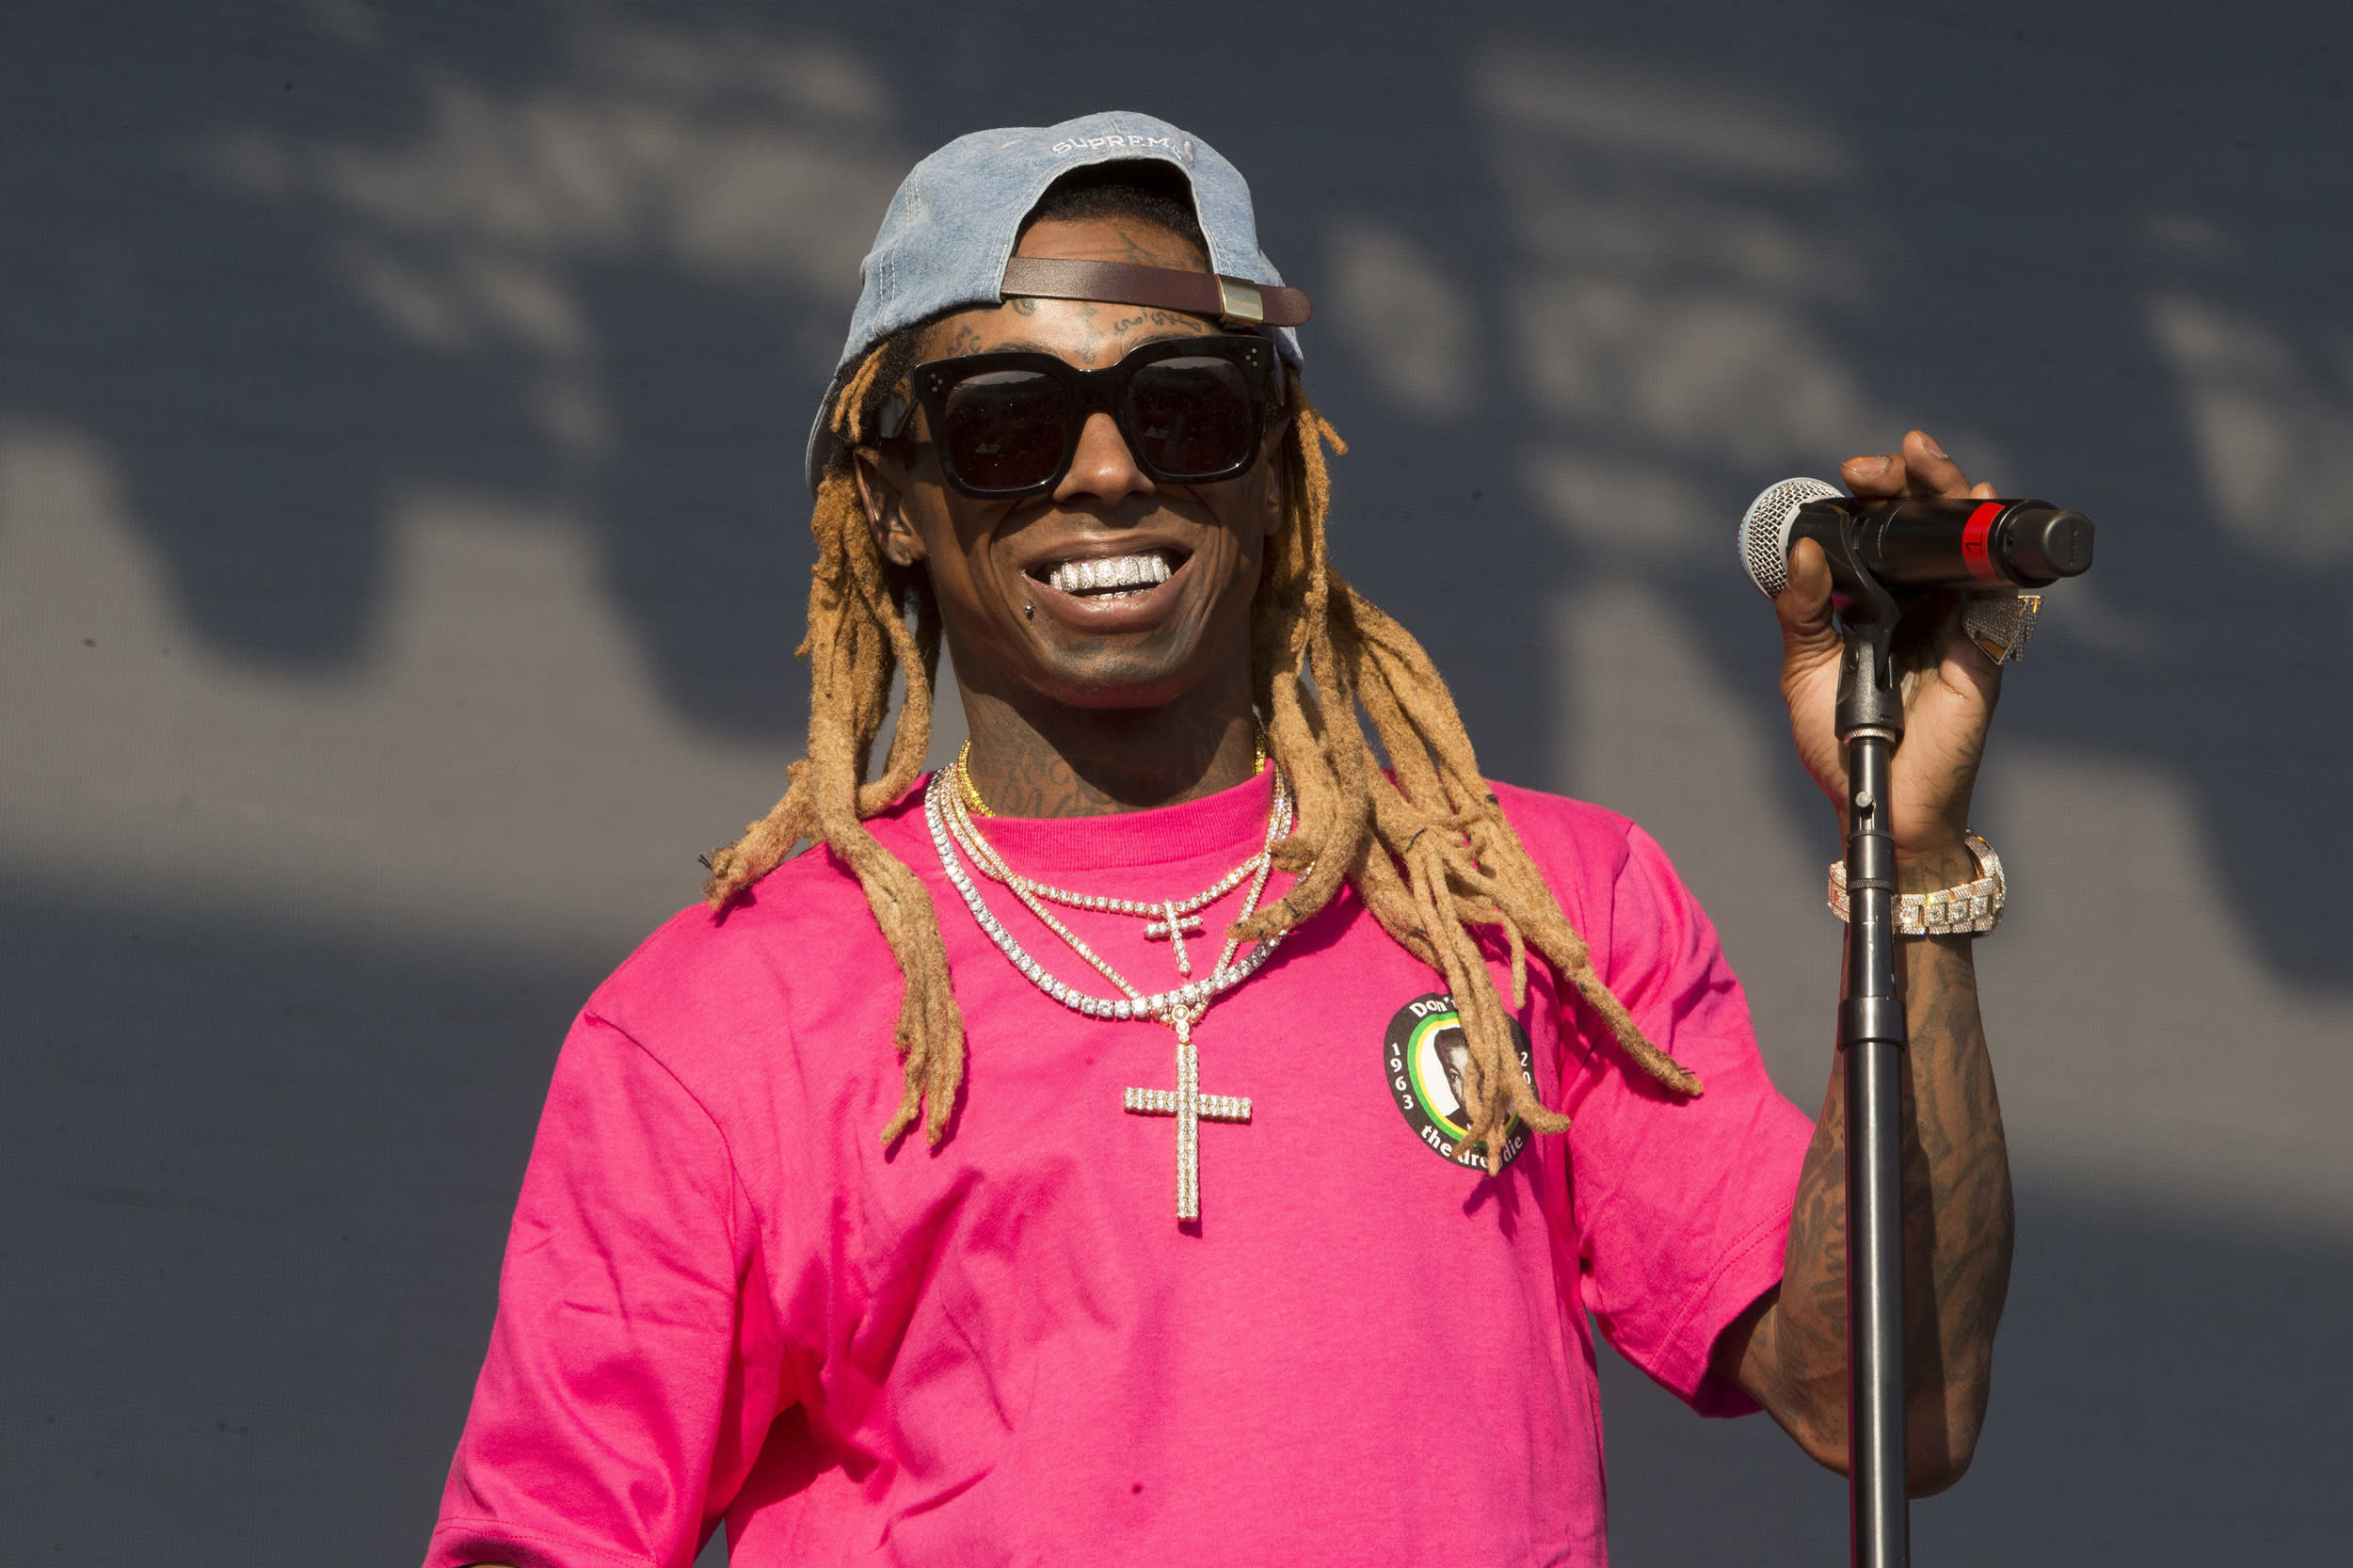 Rapper Lil Wayne charged with federal gun offense in Florida, faces 10 years in prison